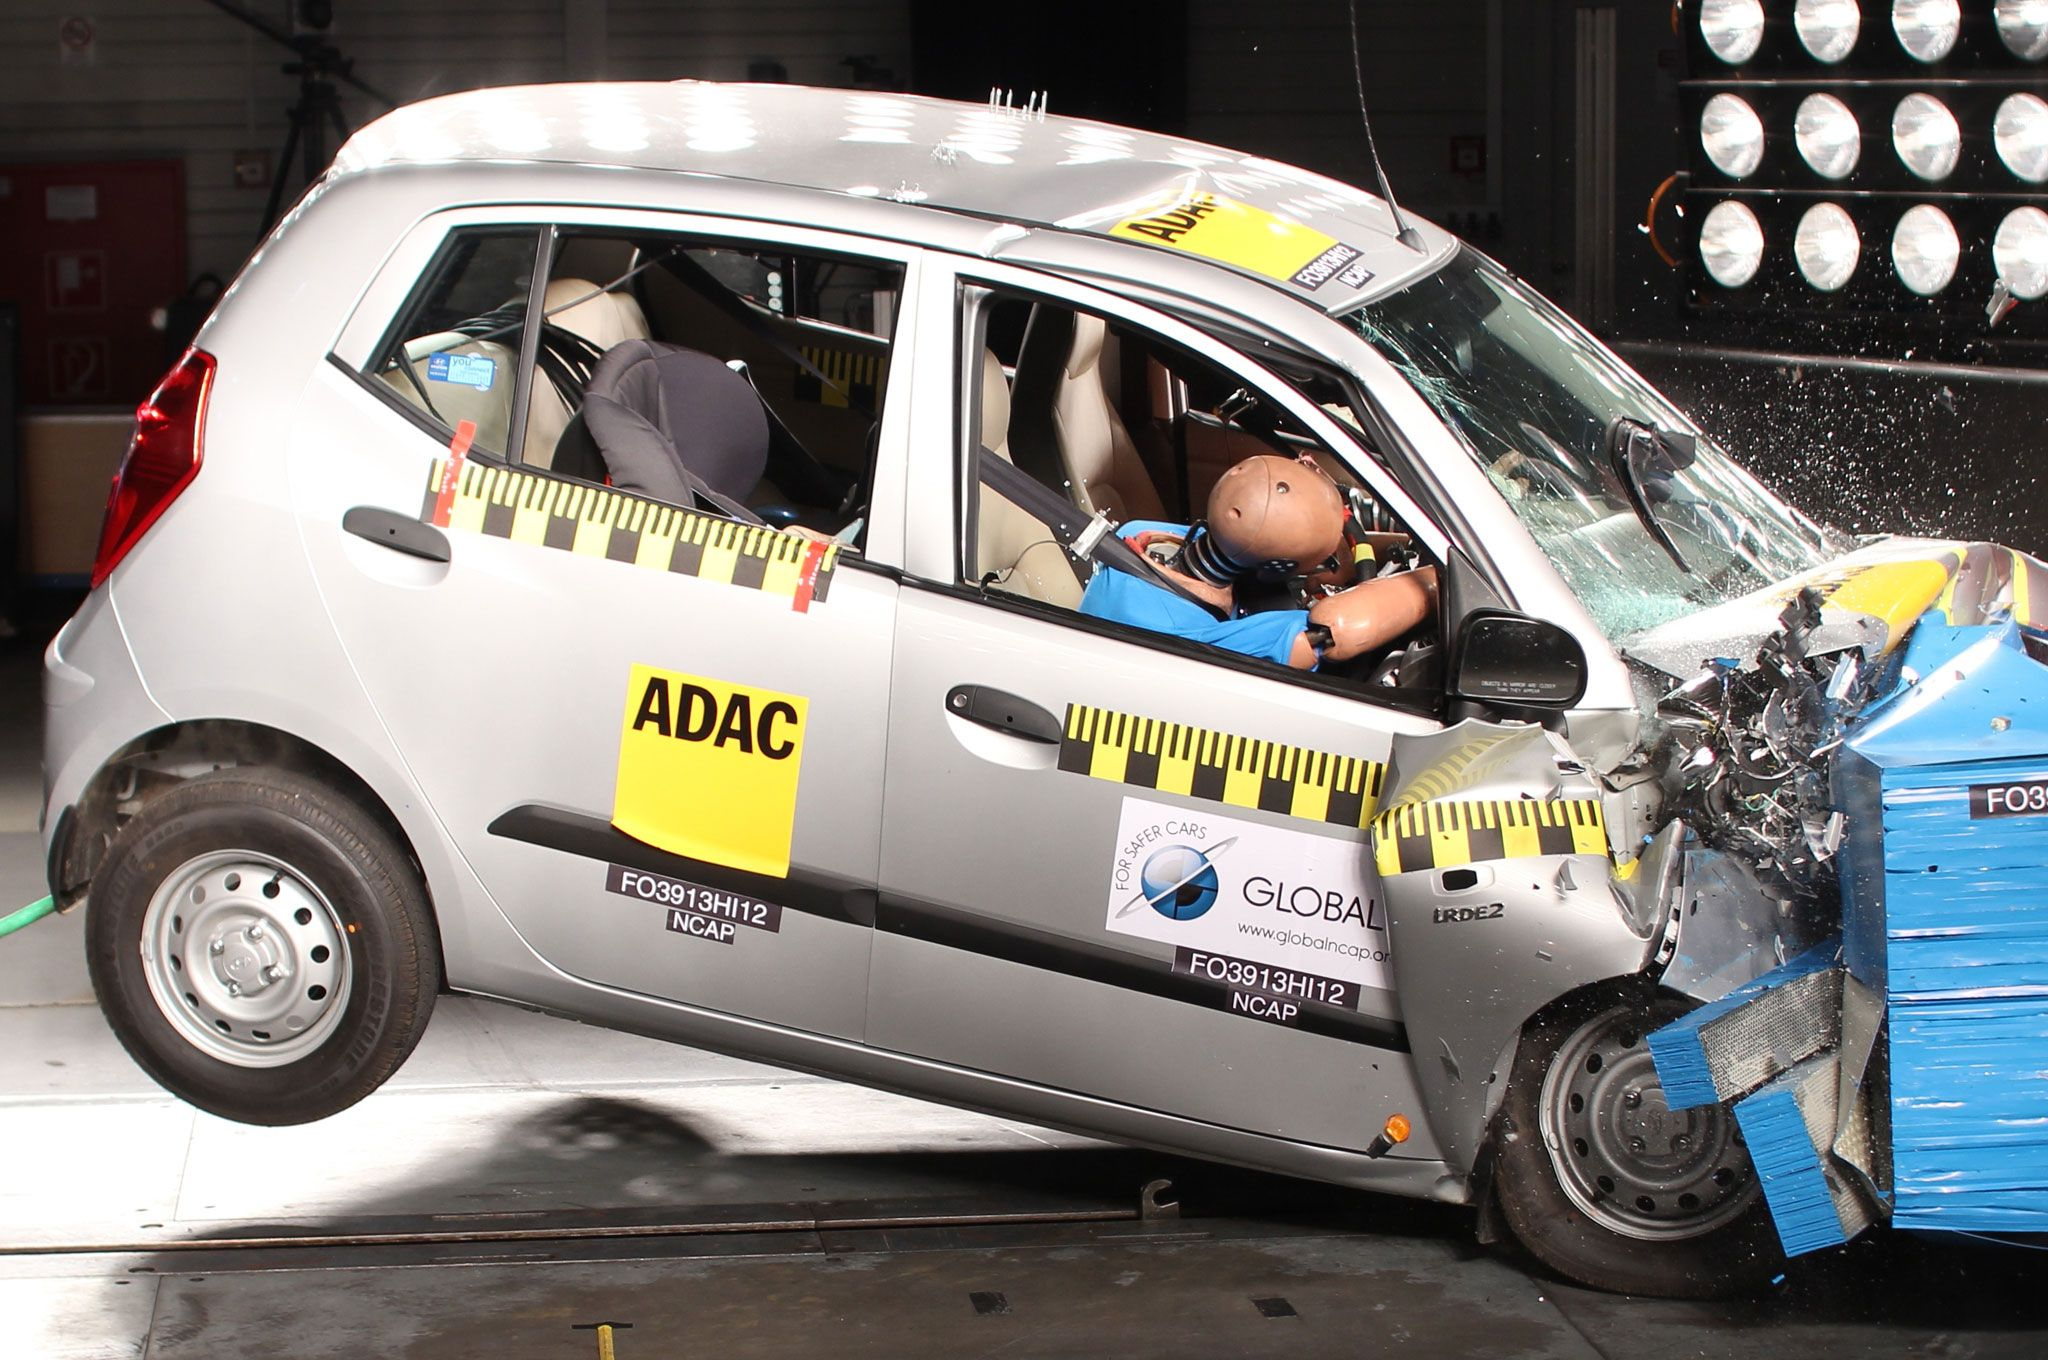 NHTSA Proposes More Extensive Testing, Changes to Rating